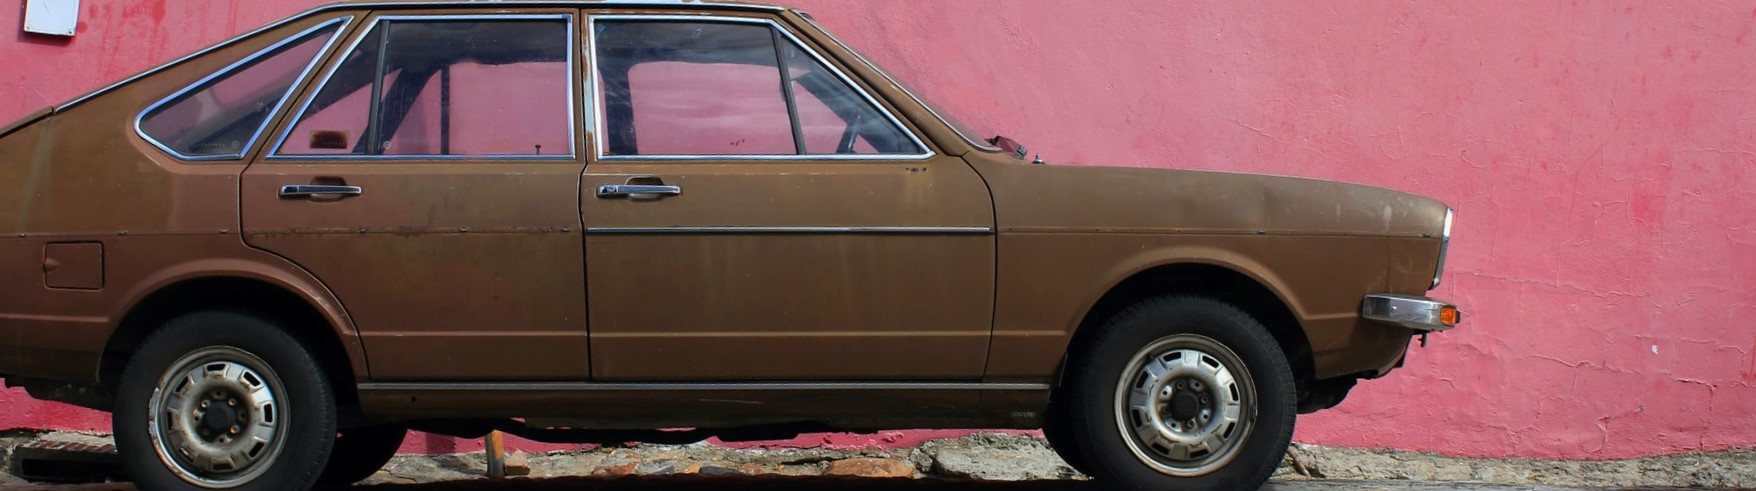 Brown Painted Oldtimer Car | Breast Cancer Car Donations